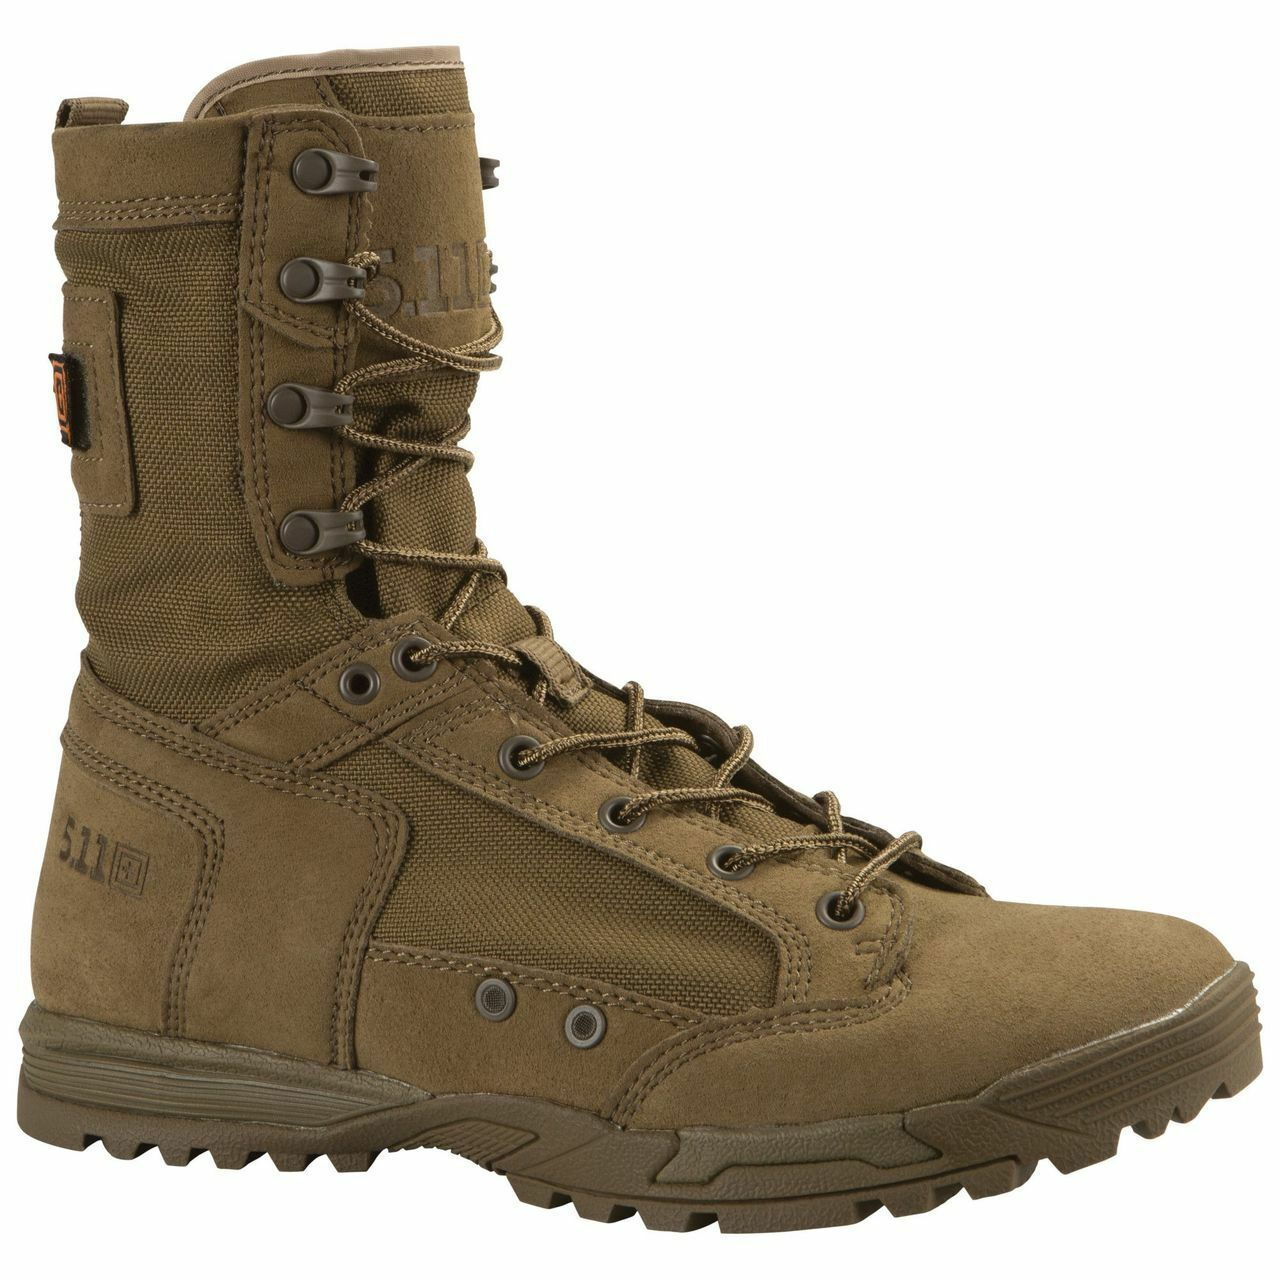 5.11 Tactical Skyweight Rapid Dry Boots